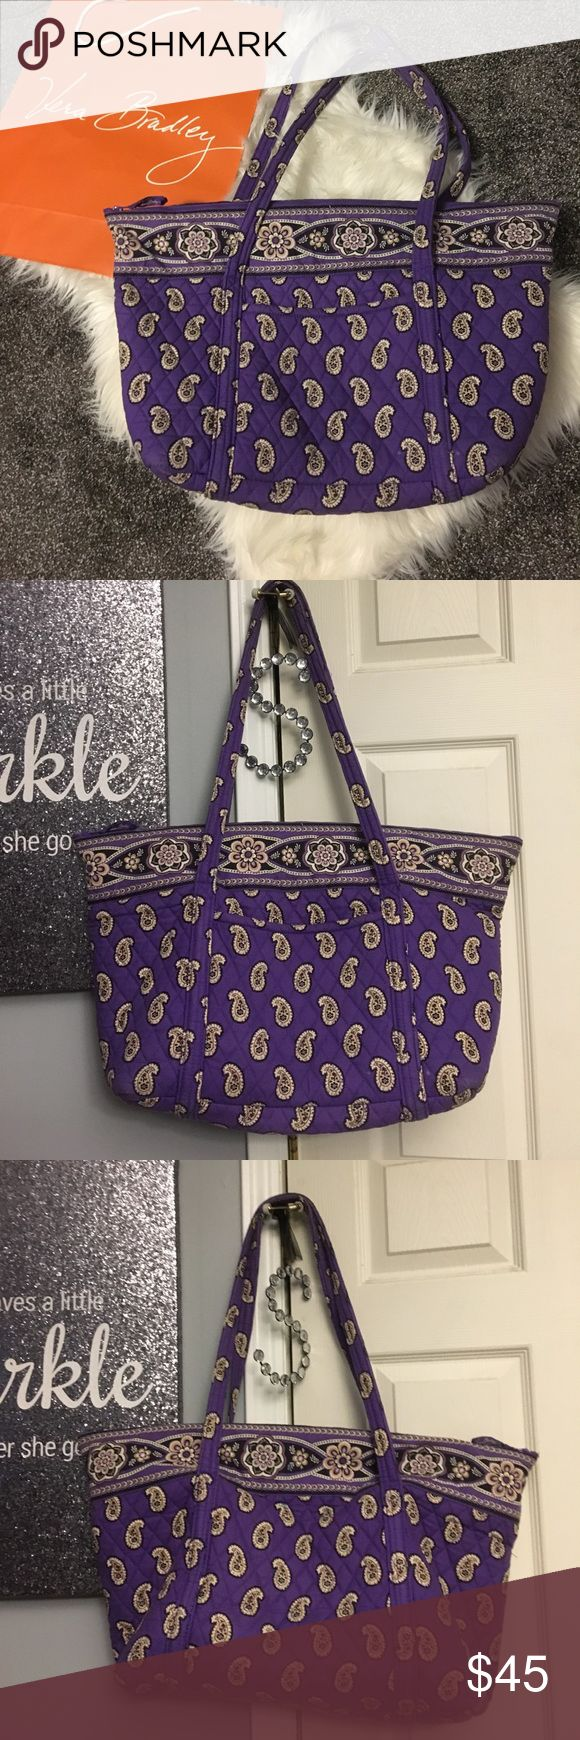 Large vera bradley tote bag Previously used, minimal wear, slight fading on handles and one discoloration shown in photo on the back of the bag, open to reasonable offers, no trades🎀 20 inches long 14 inches tall 13 inch handle drop Vera Bradley Bags Totes